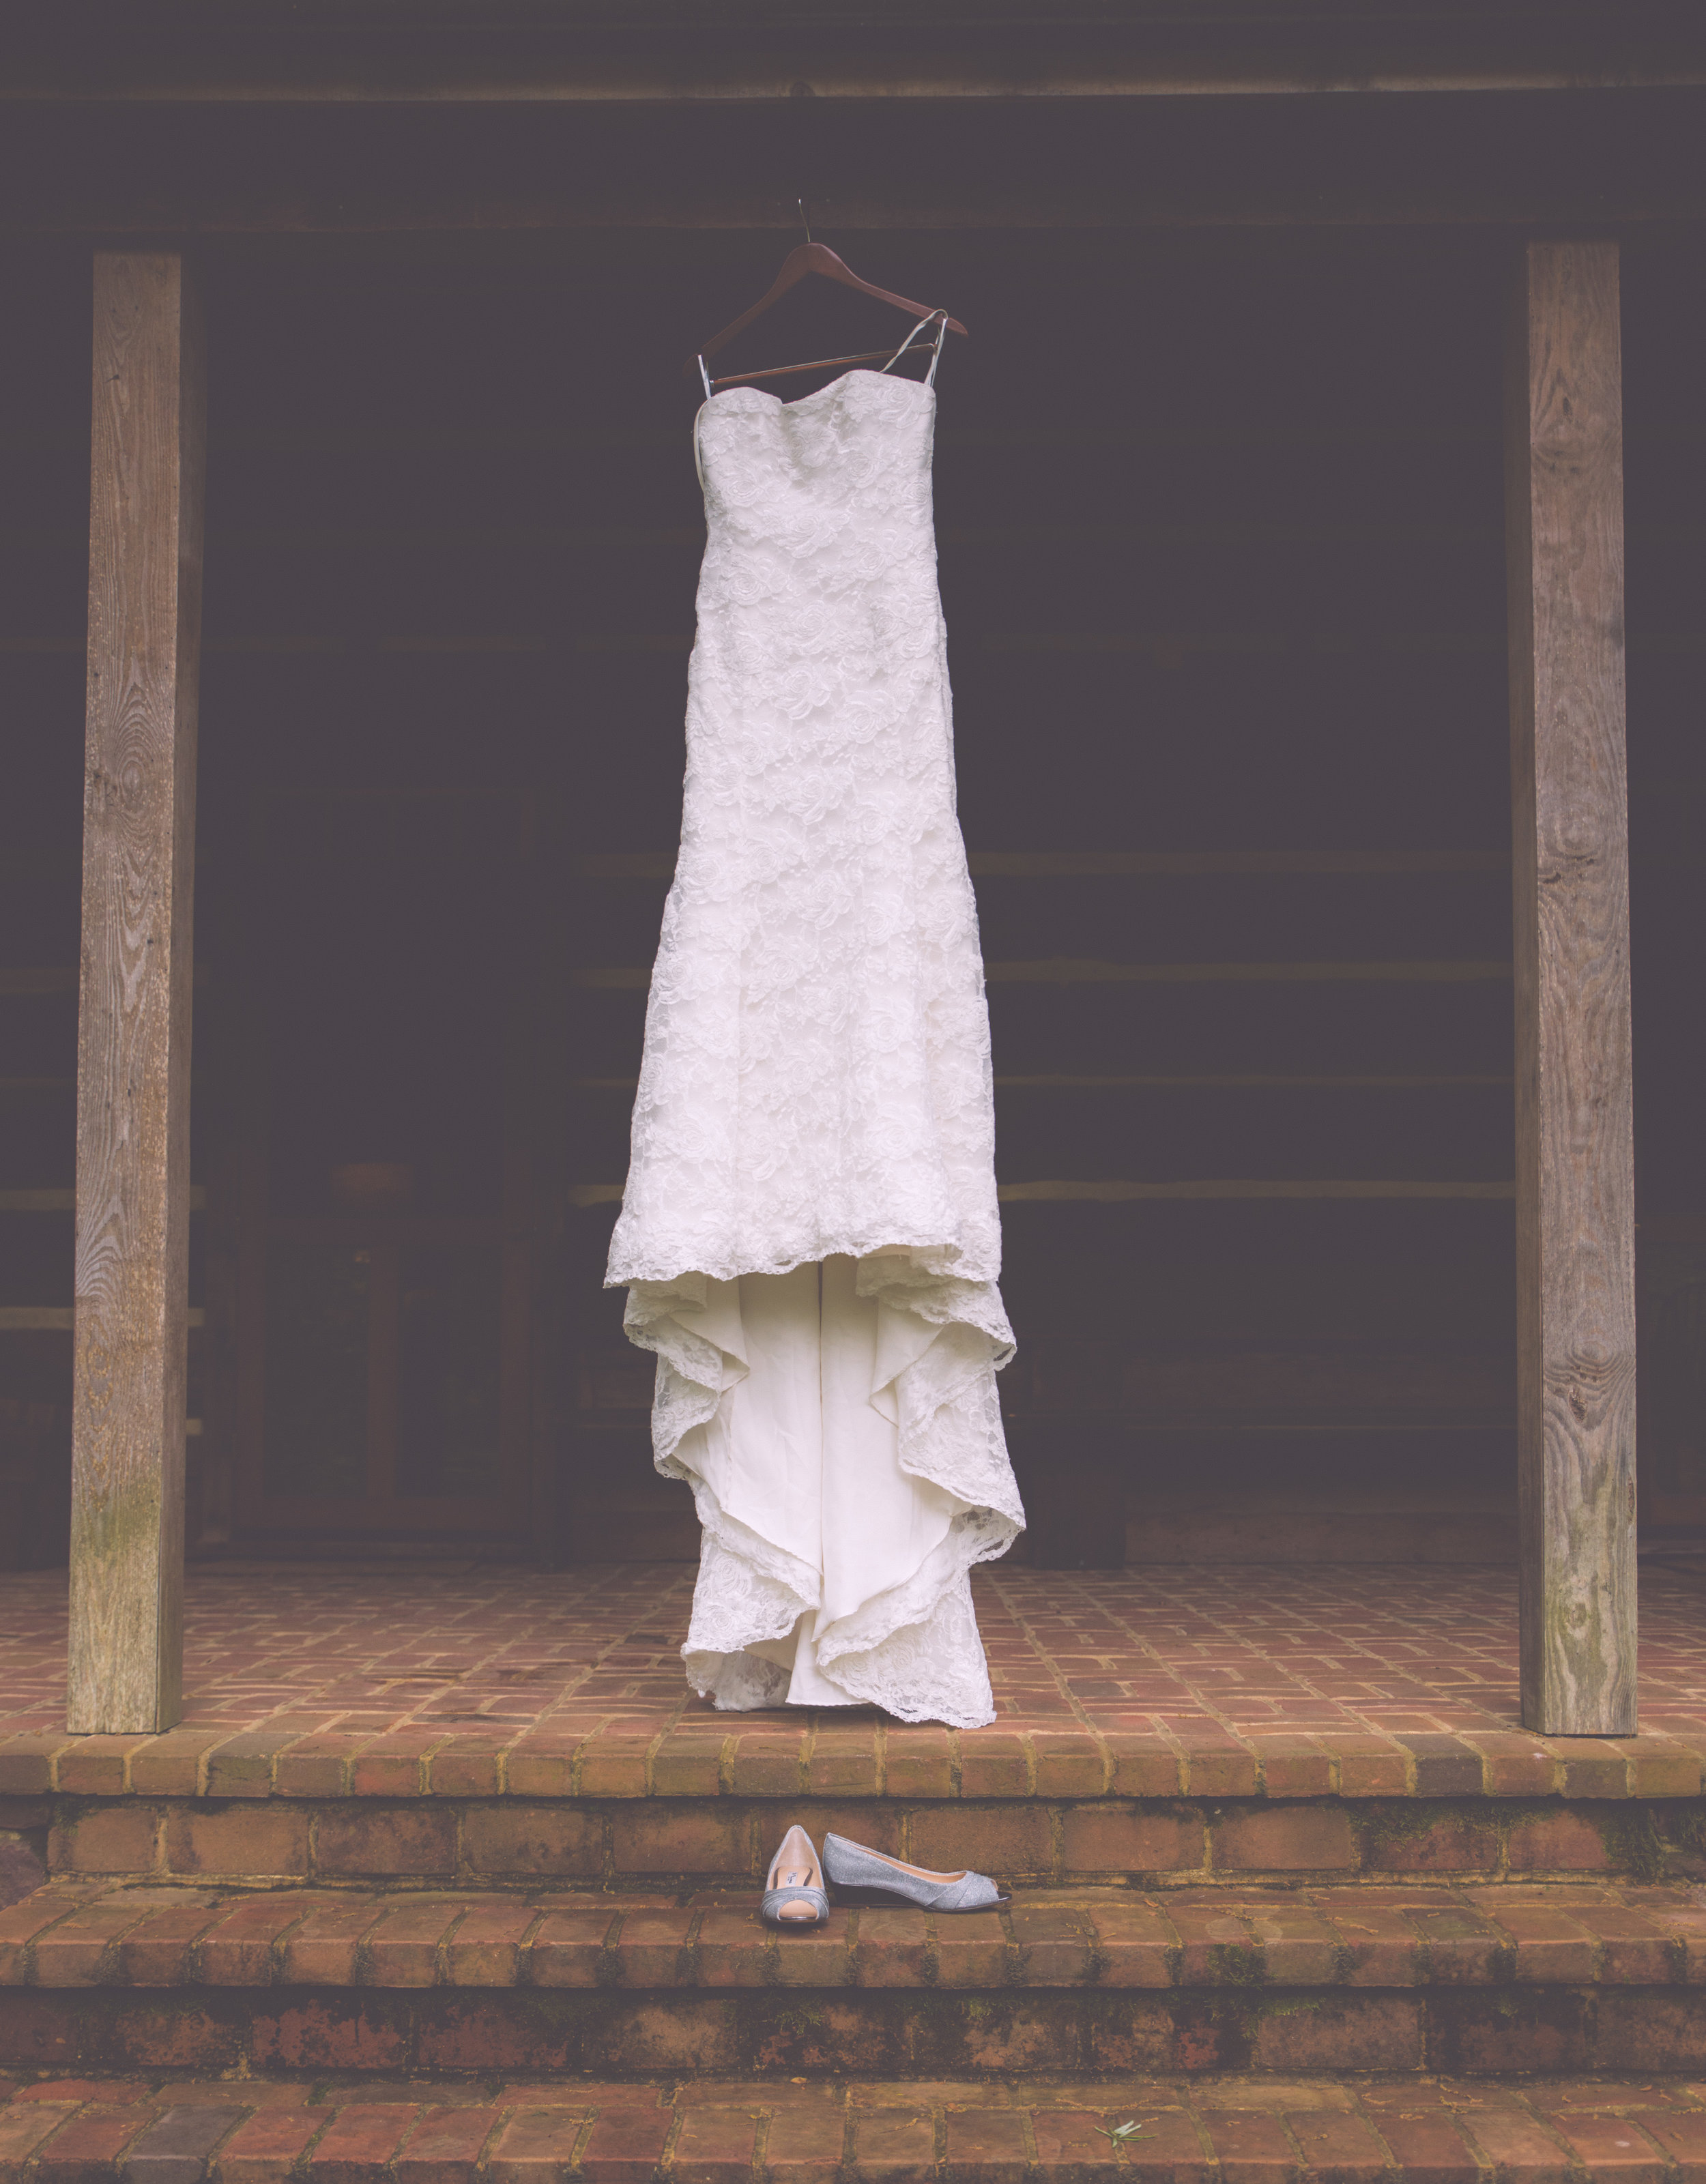 Brides Dress and shoes hanging outside